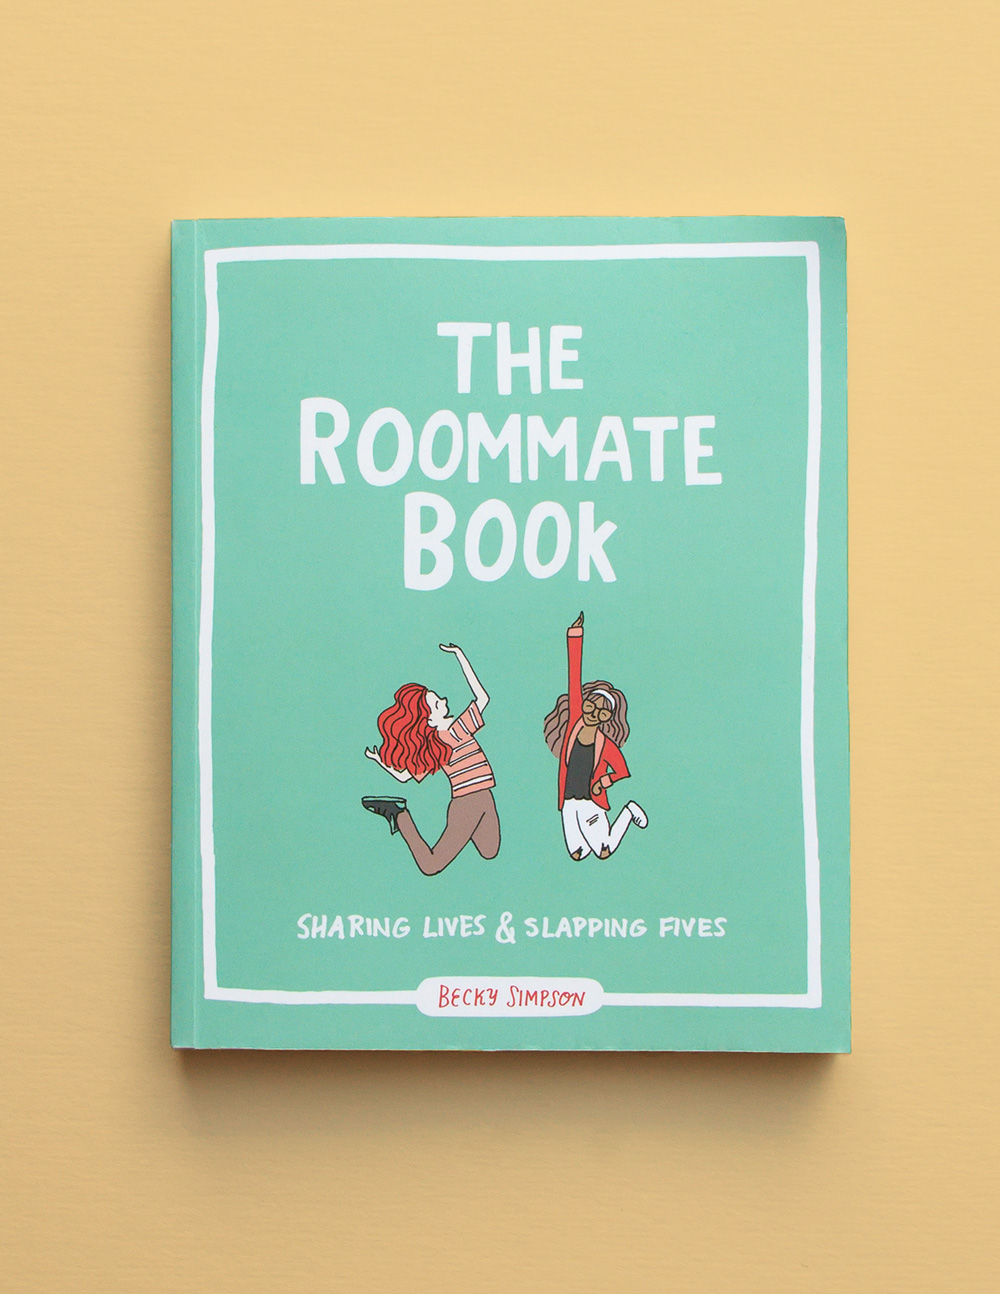 THE-ROOMMATE-BOOK-COVER1.jpg